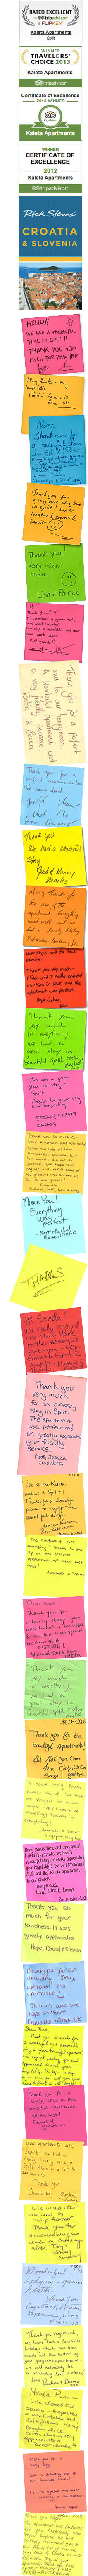 Split Apartments KALETA APARTMENTS - Guests Gratitude Notes